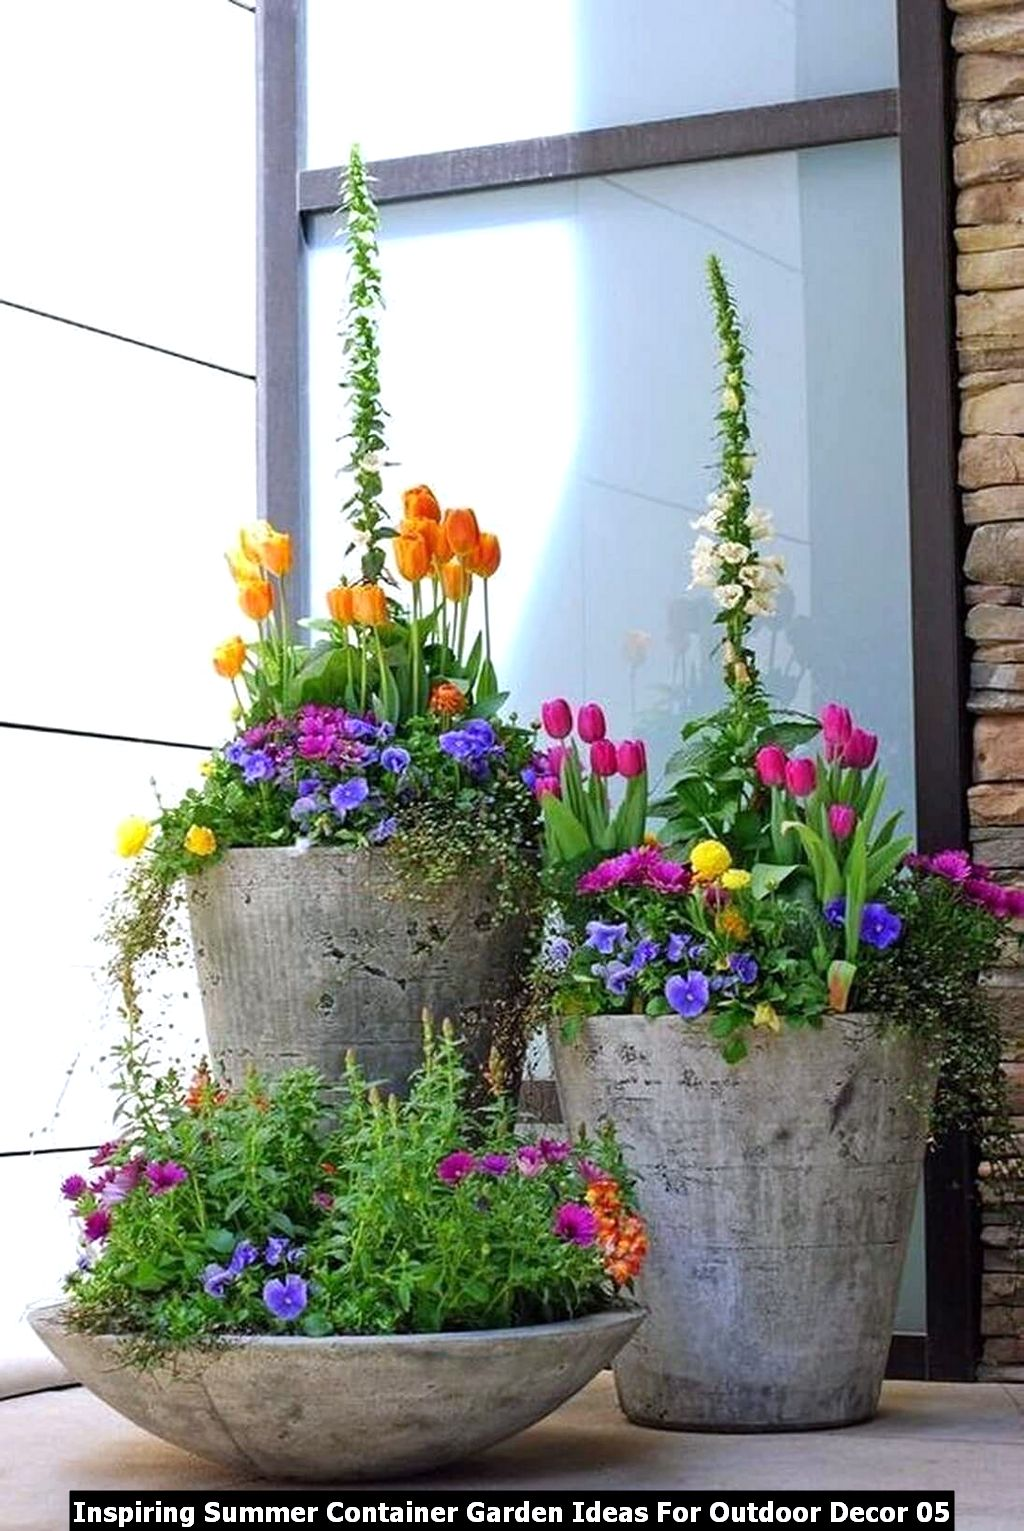 Inspiring Summer Container Garden Ideas For Outdoor Decor 05